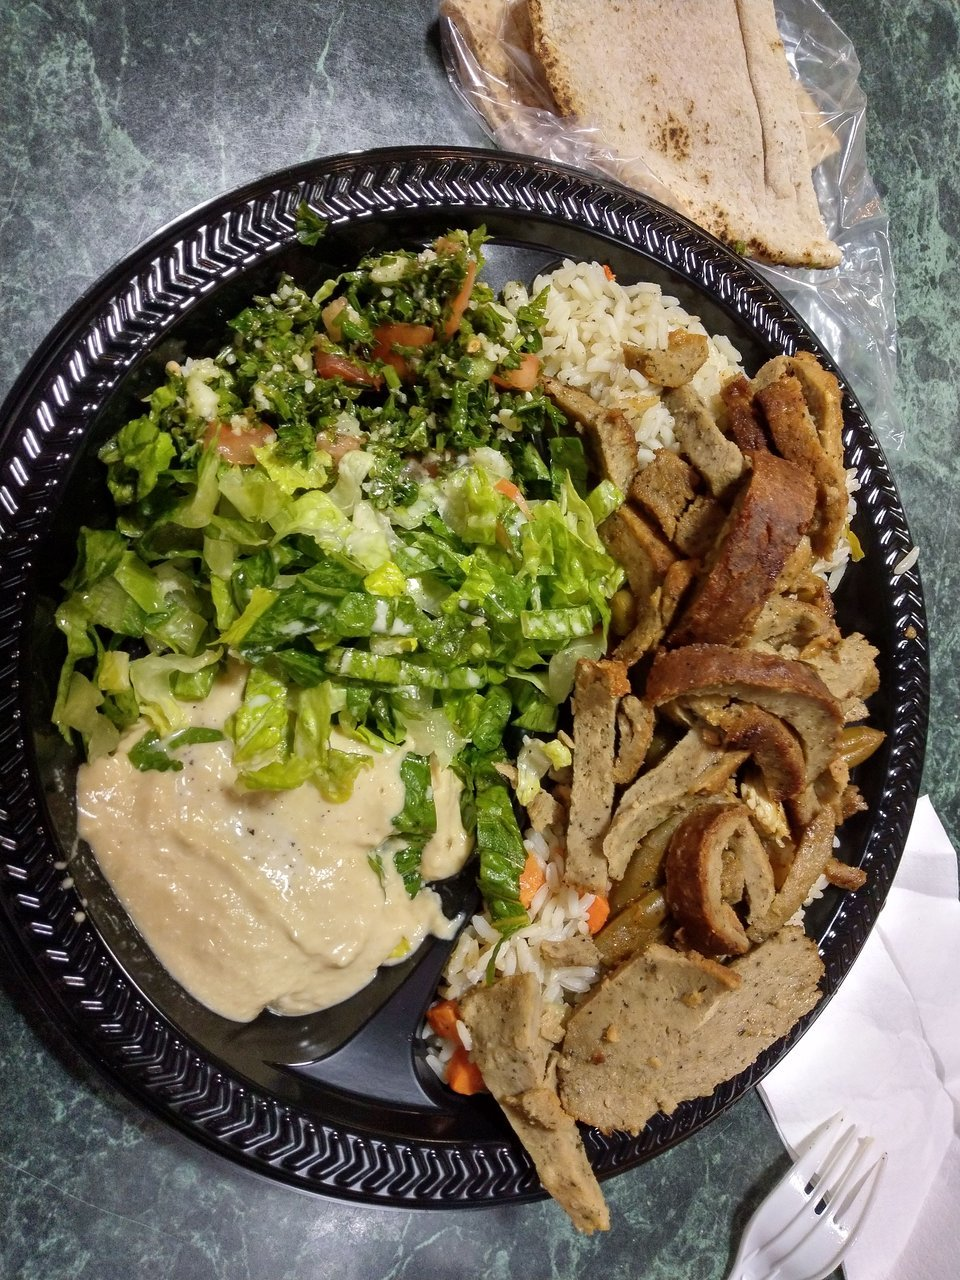 Kamals Middle Eastern Cuisine